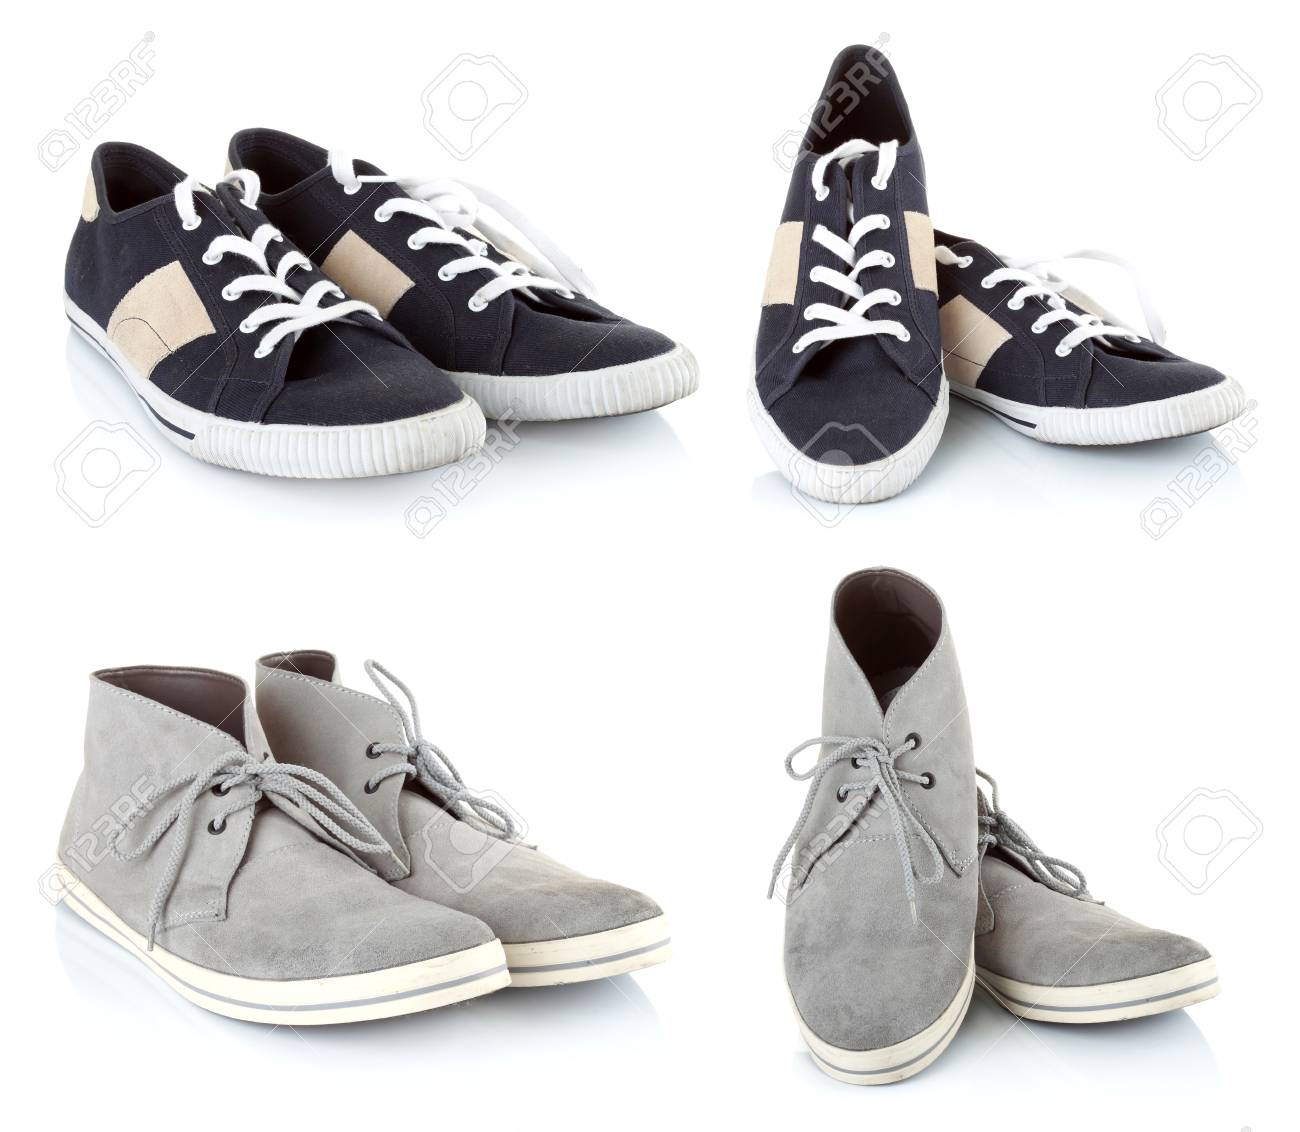 colletion of Classic sneakers shoes isolated on white background Stock Photo - 23411773